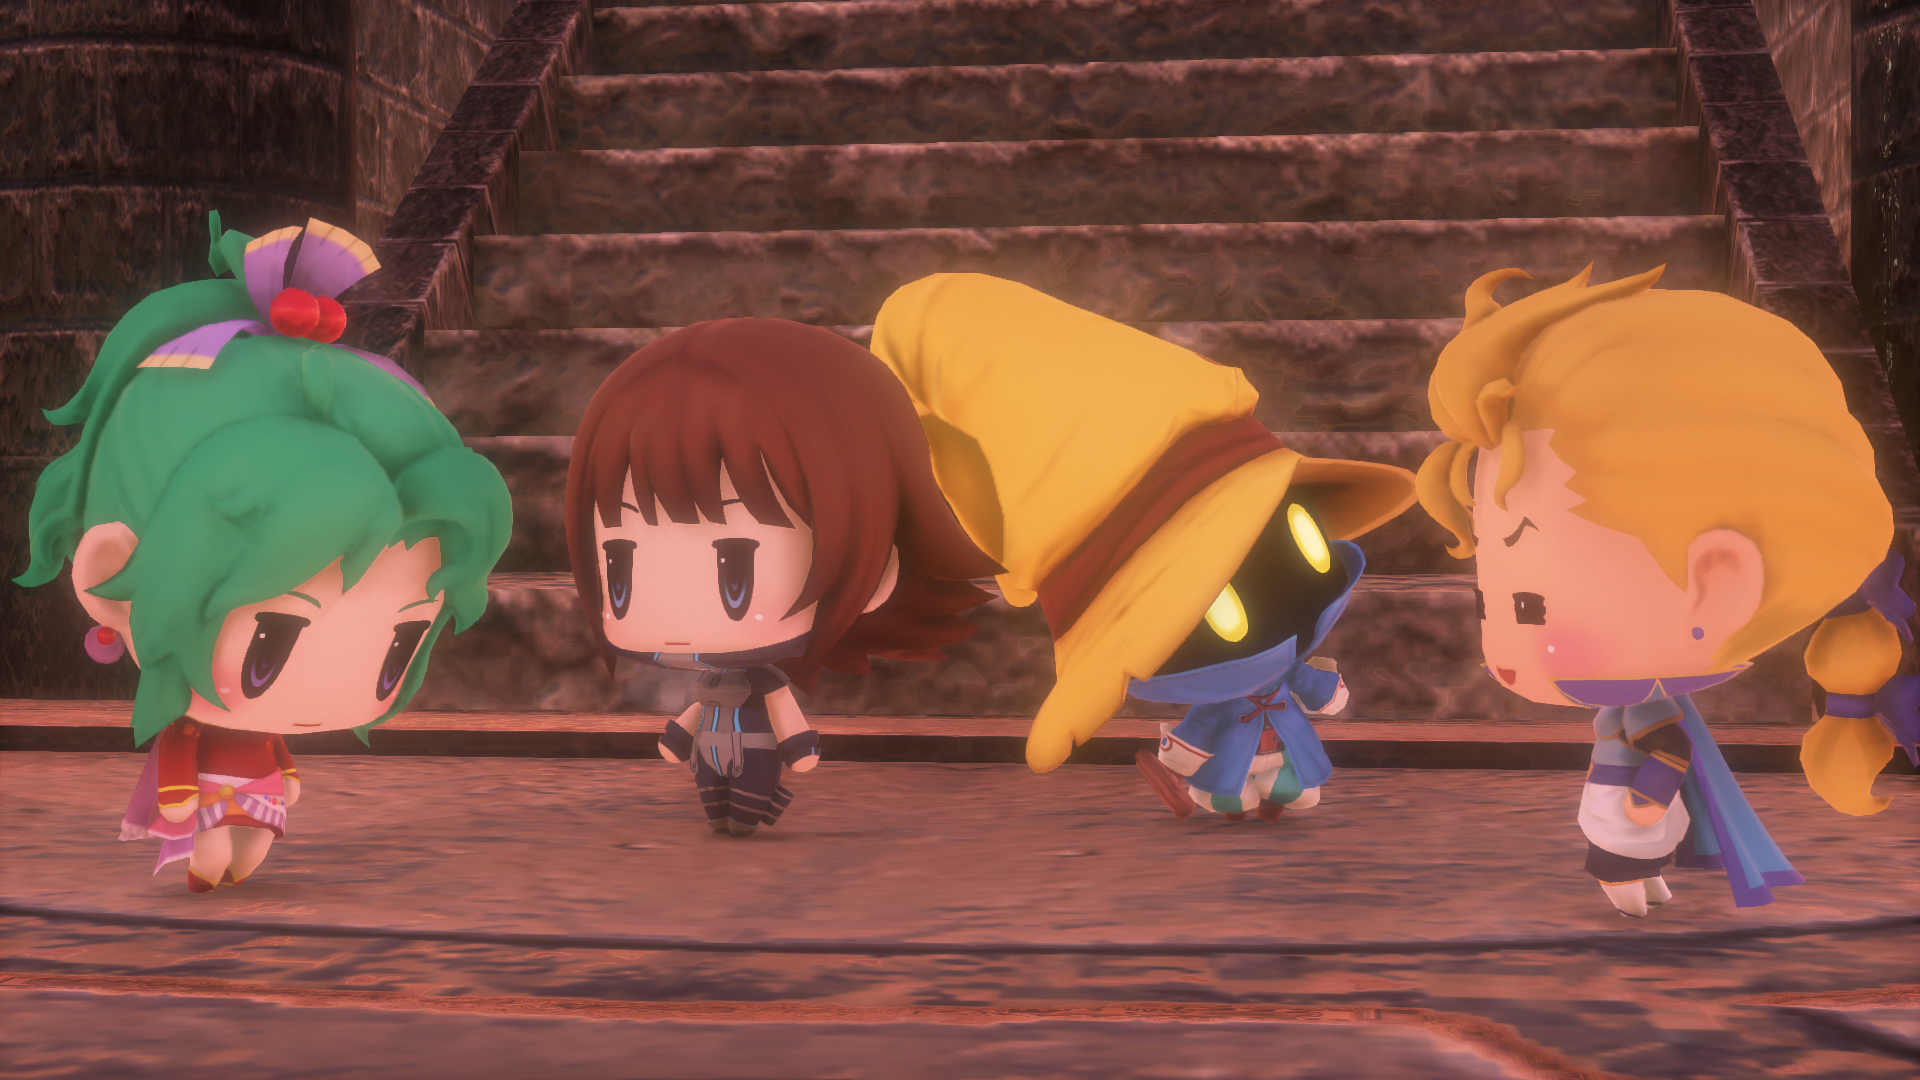 Take A Look At These Beautiful World Of Final Fantasy Screens